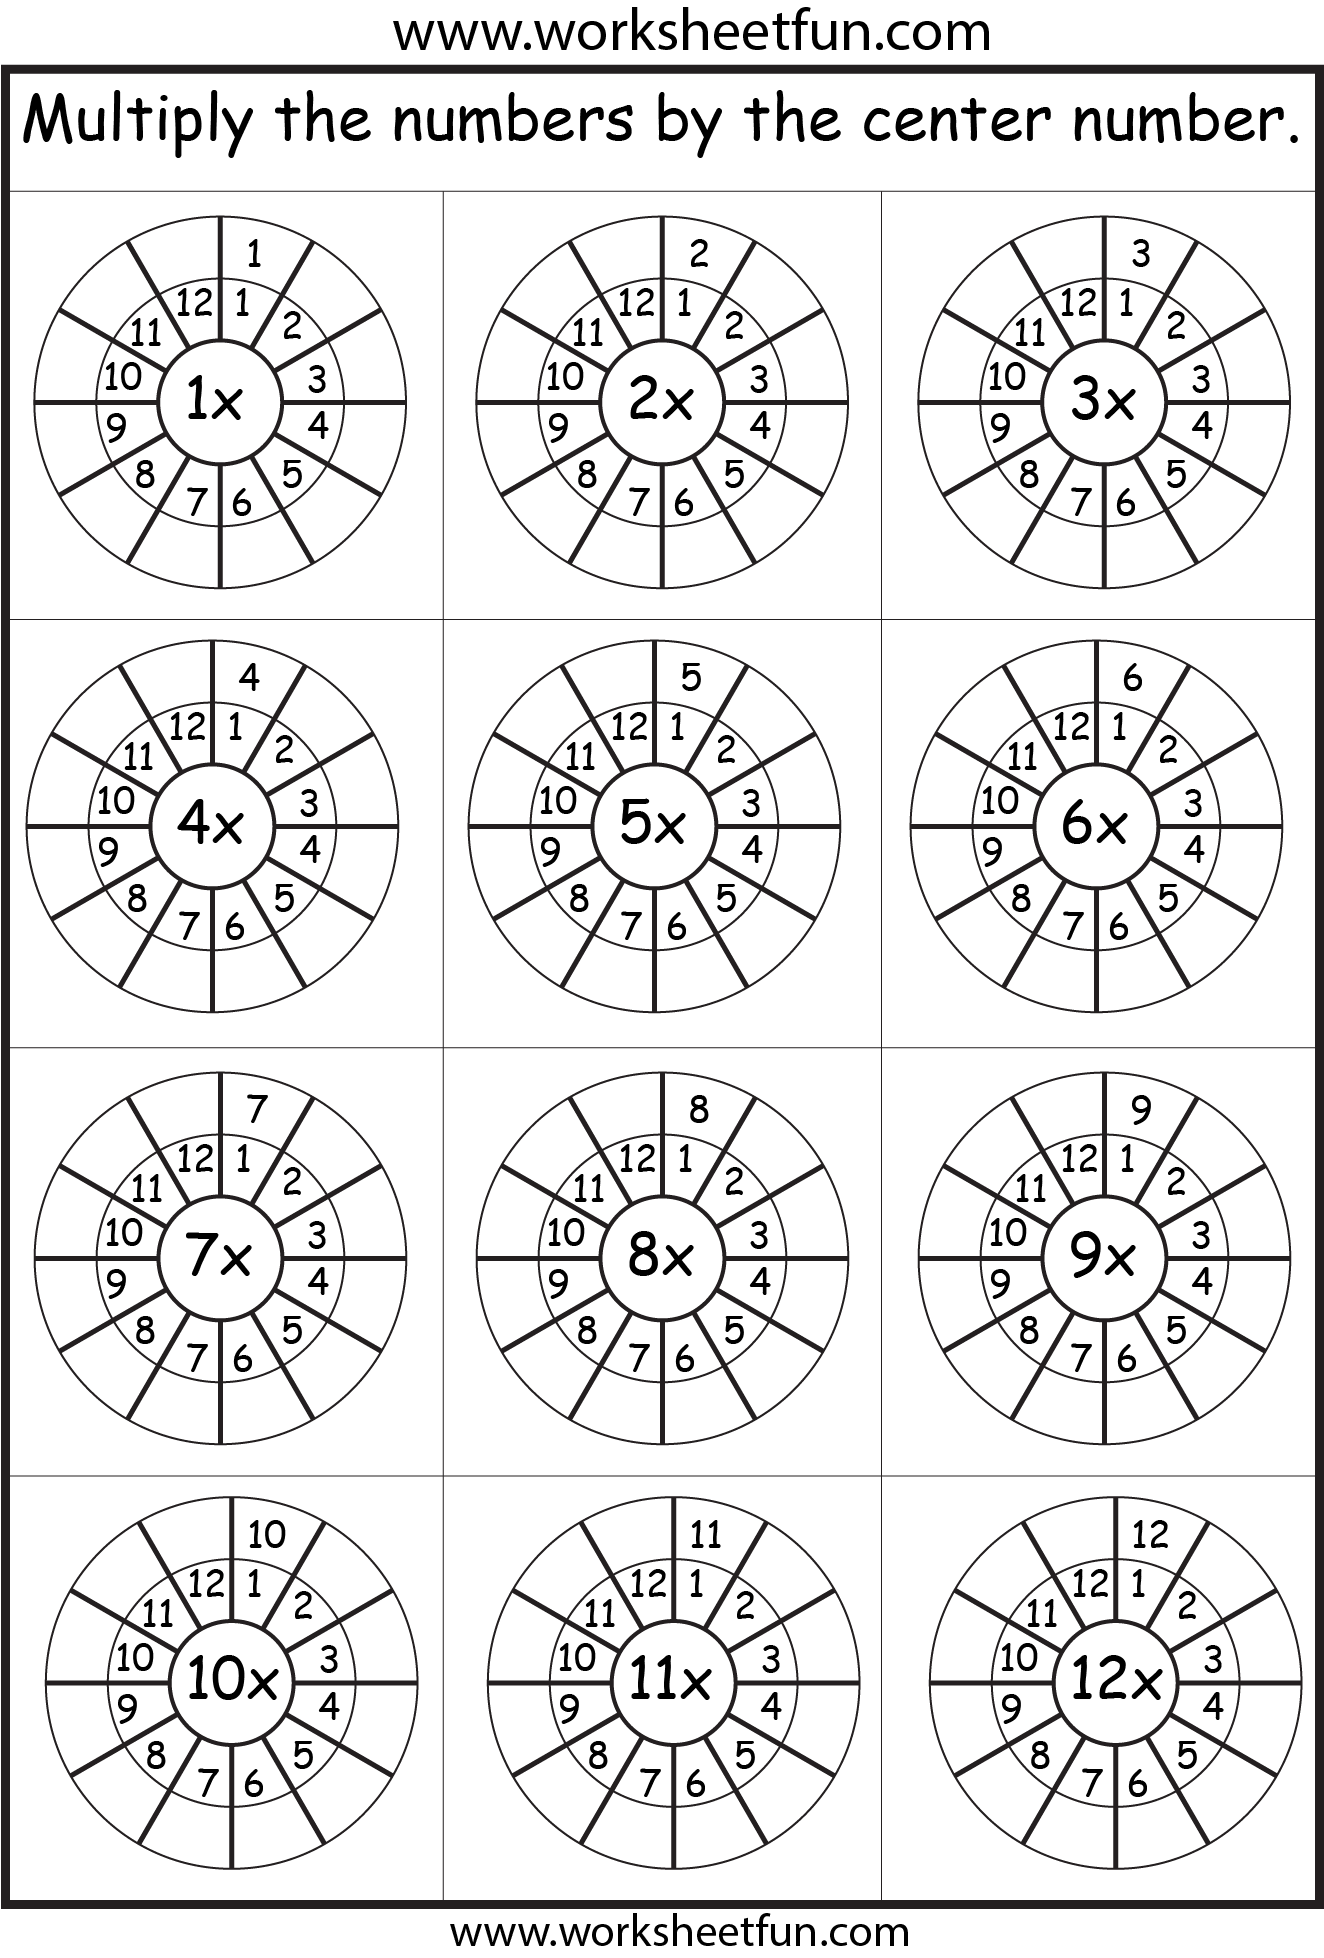 3rd grade multiplication coloring worksheets - Amazing Number Of Free Worksheets Some Plain And Some Cute Math English